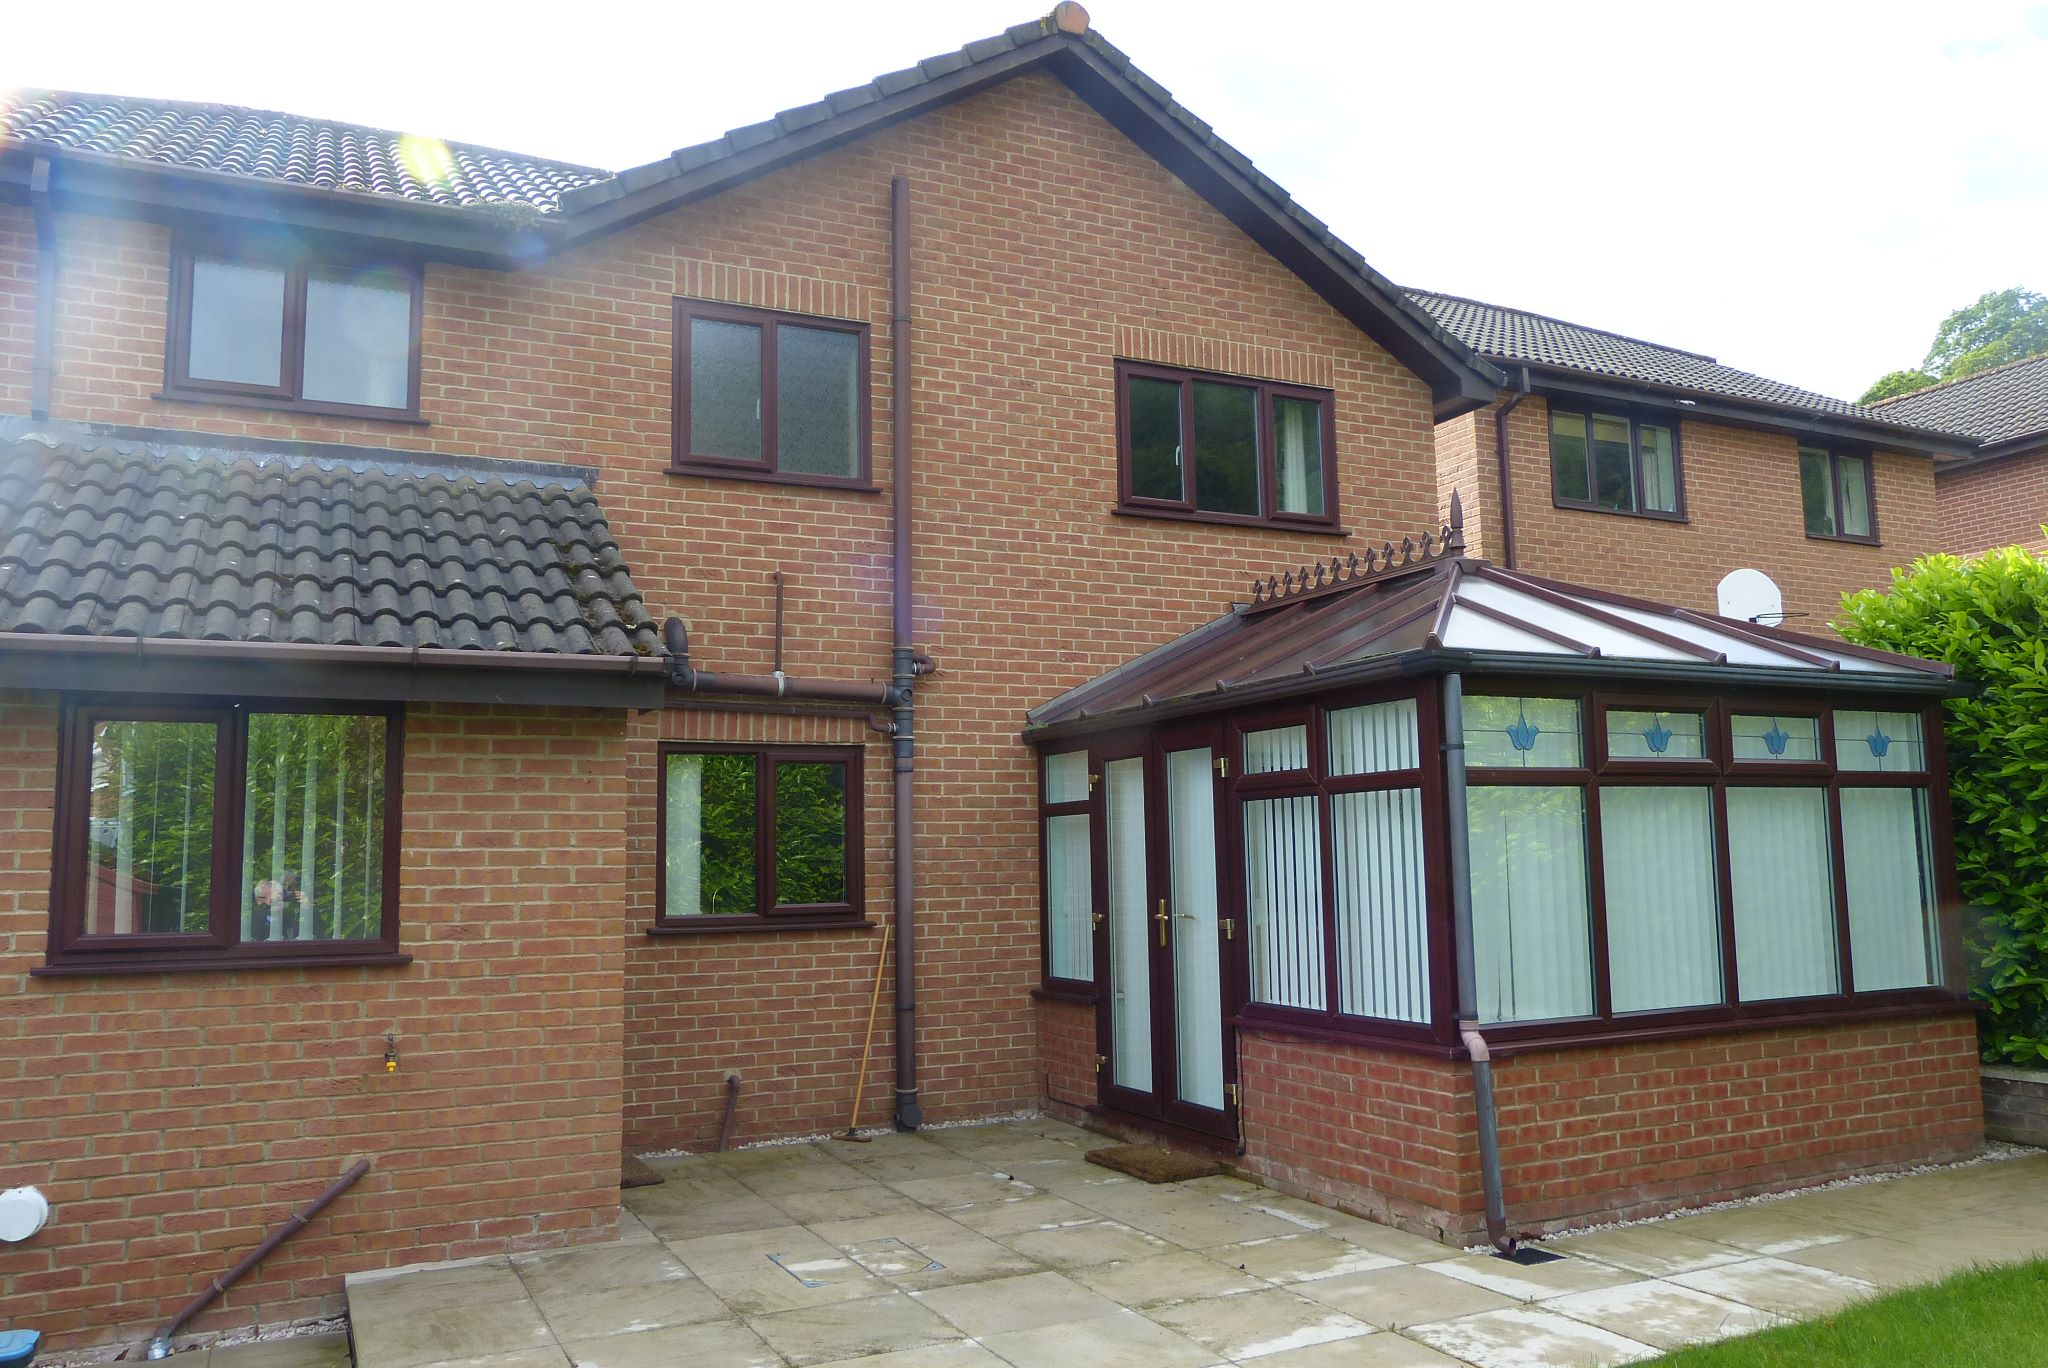 4 bedroom detached house For Sale in Abergele - Photograph 13